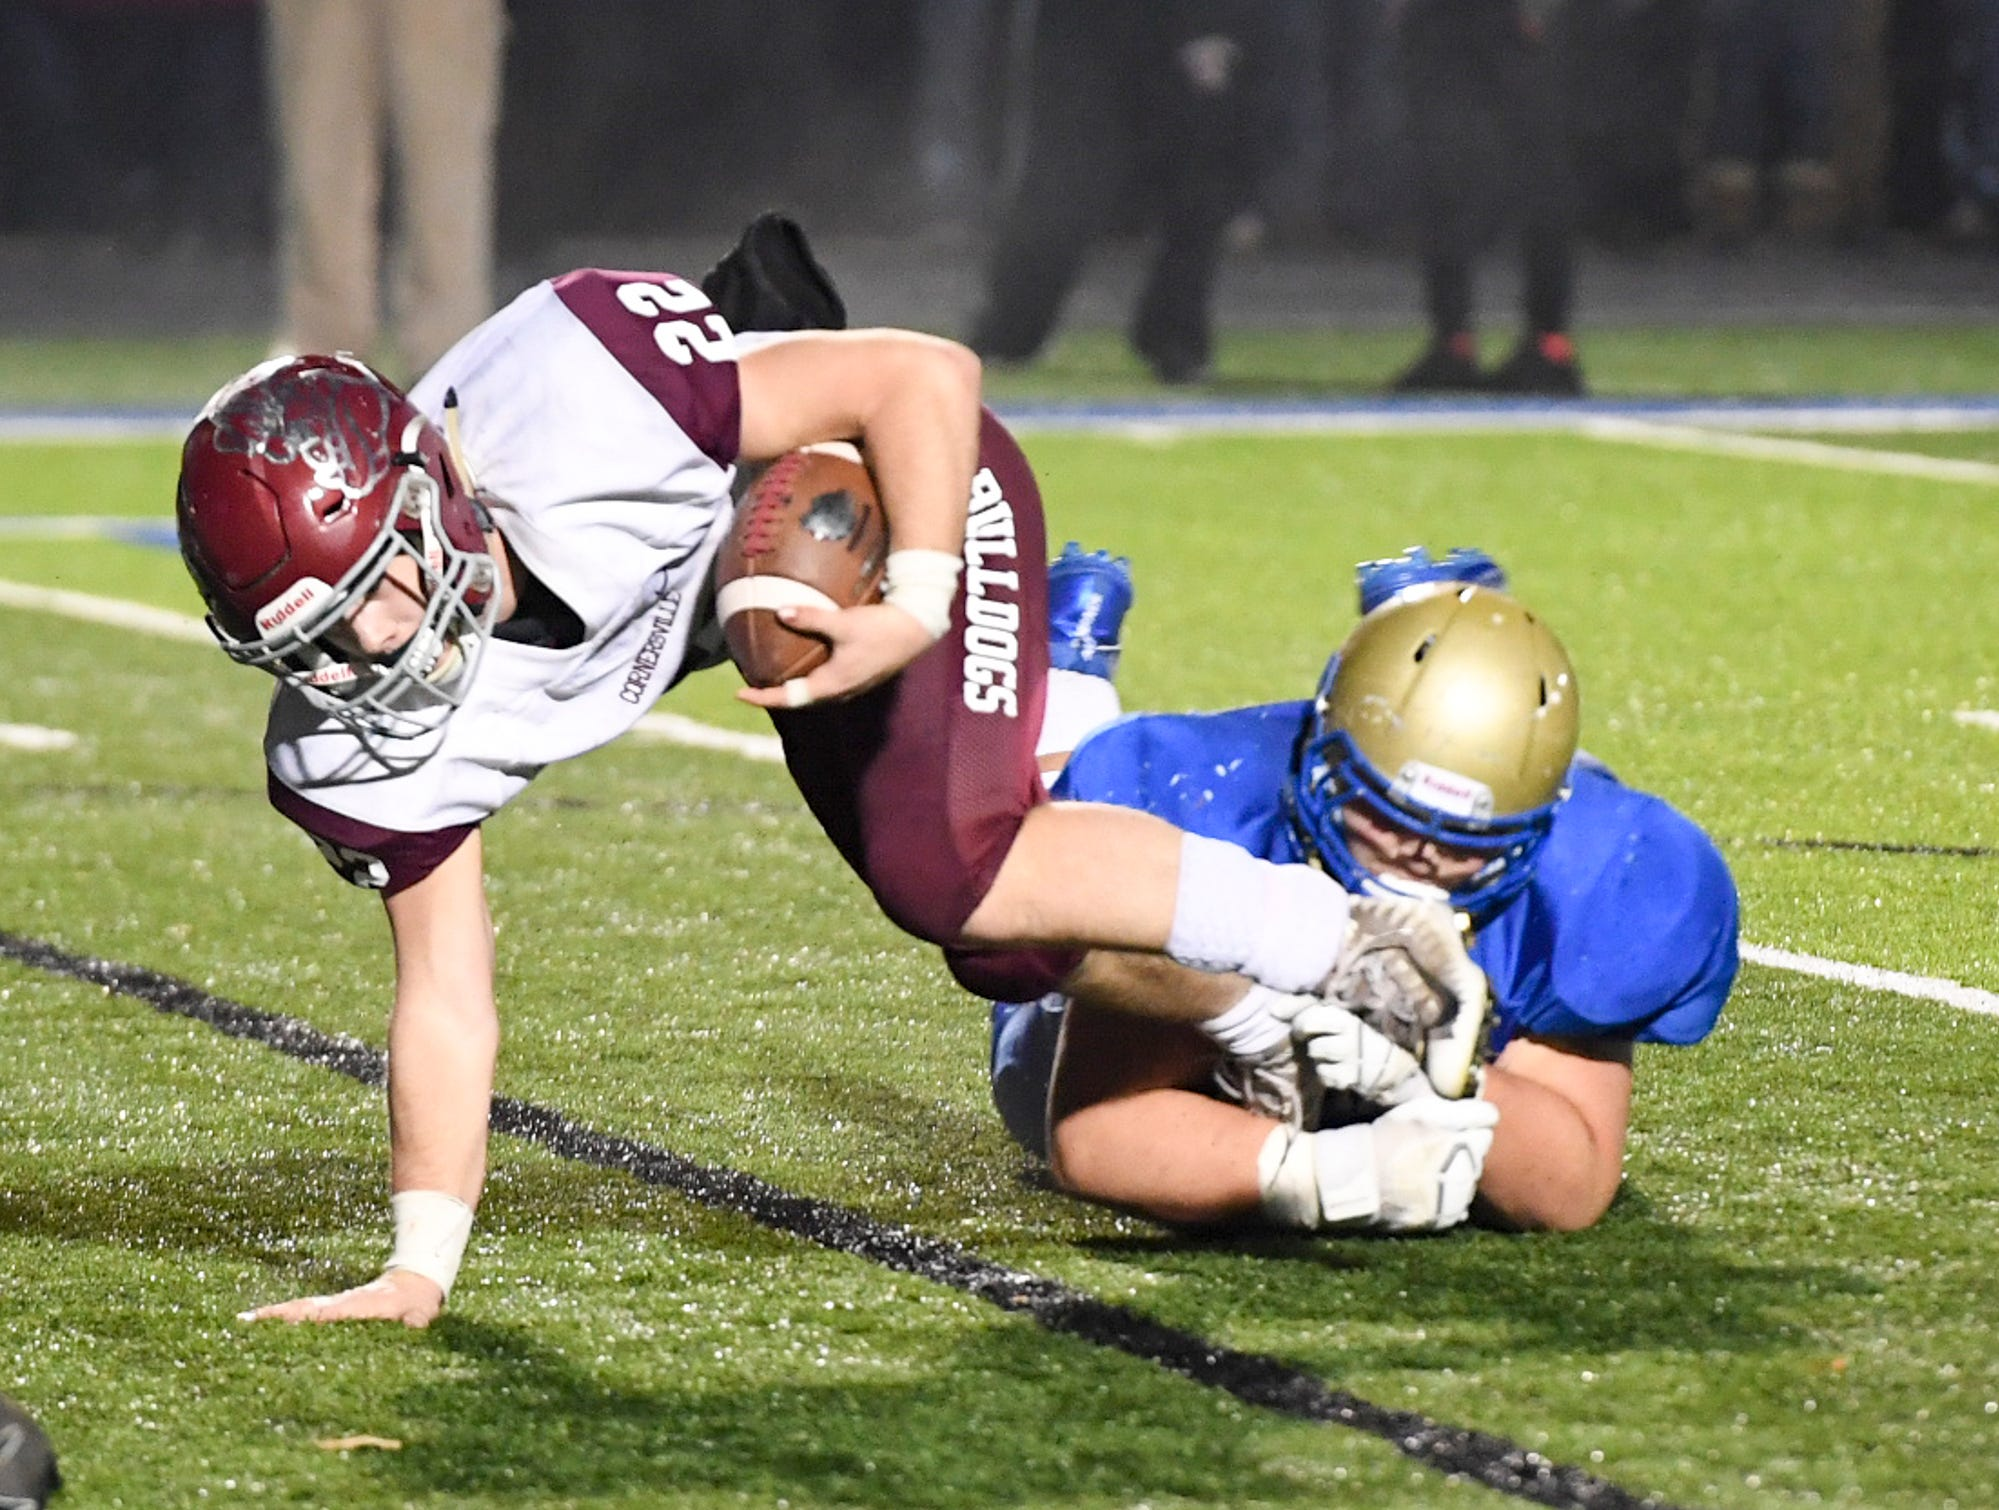 Cornersville's Eli Woodard is grabbed by a Huntingdon defender during their TSSAA Class A quarter final game, Friday, November 16. Huntingdon fell to Cornersville, 13-7.